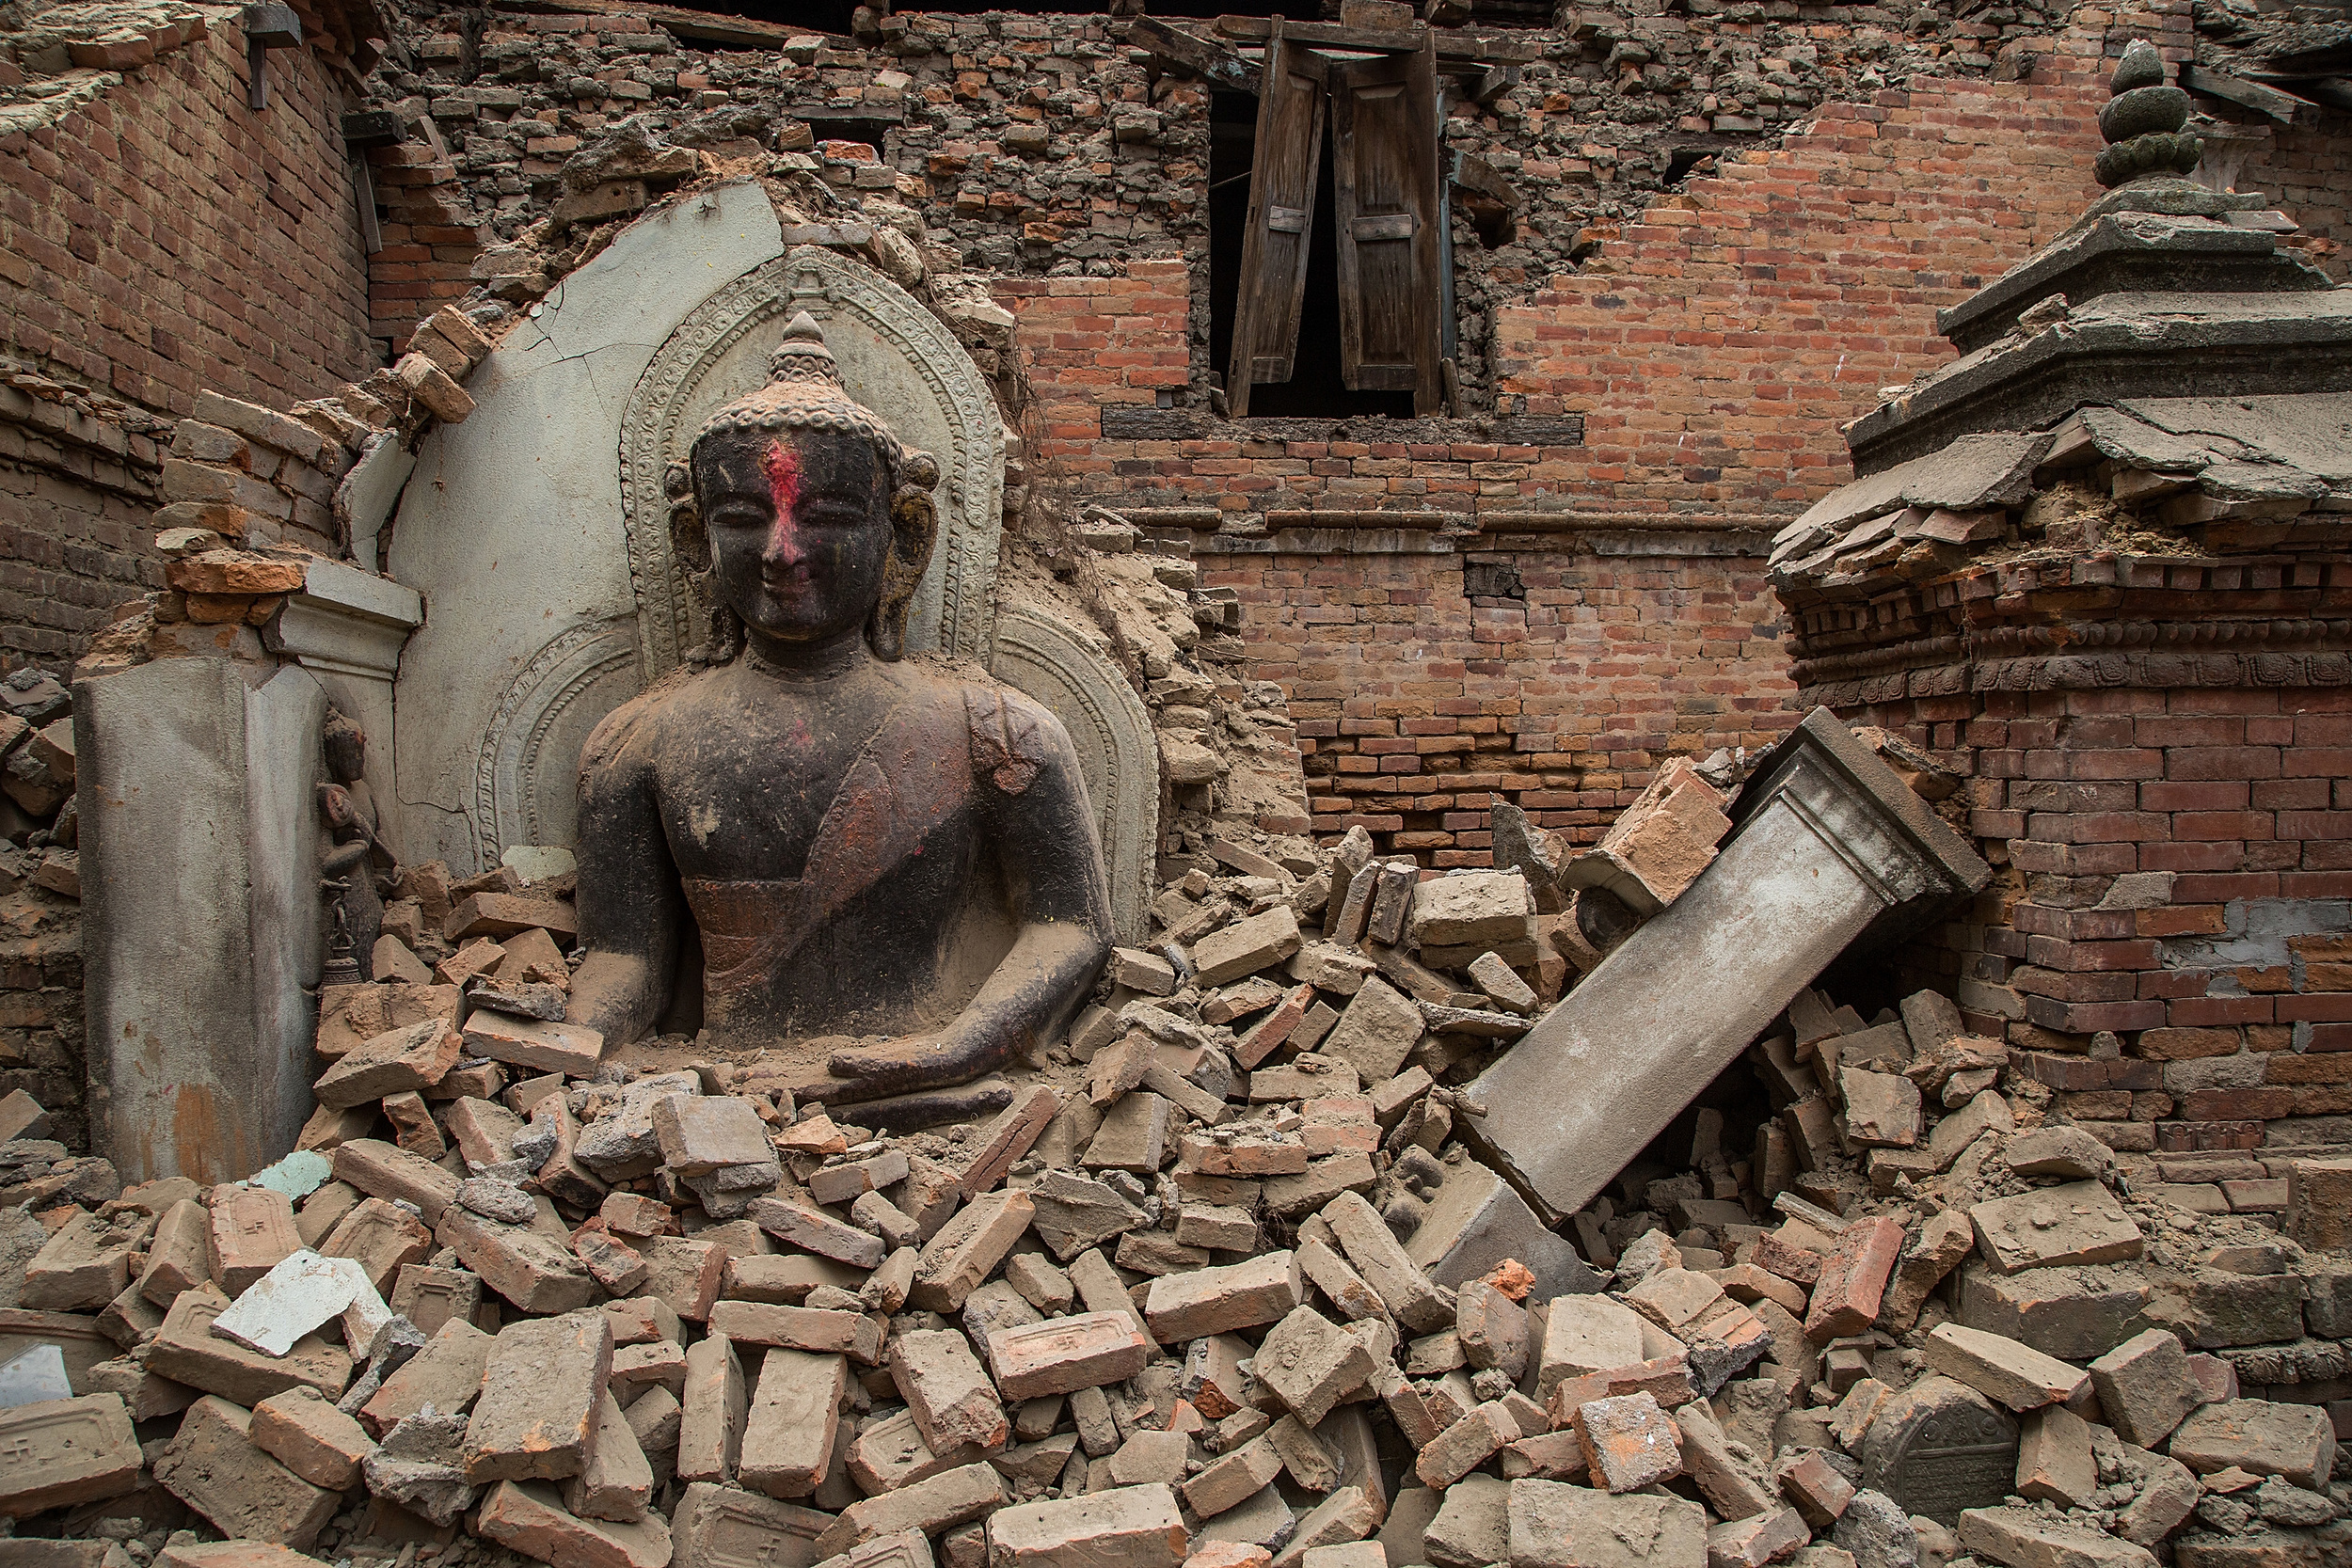 A Buddha statue is surrounded by debris from a collapsed temple in the UNESCO world heritage site of Bhaktapur on April 26 in Bhaktapur, Nepal.     (Photo: Omar Havana, Getty Images)